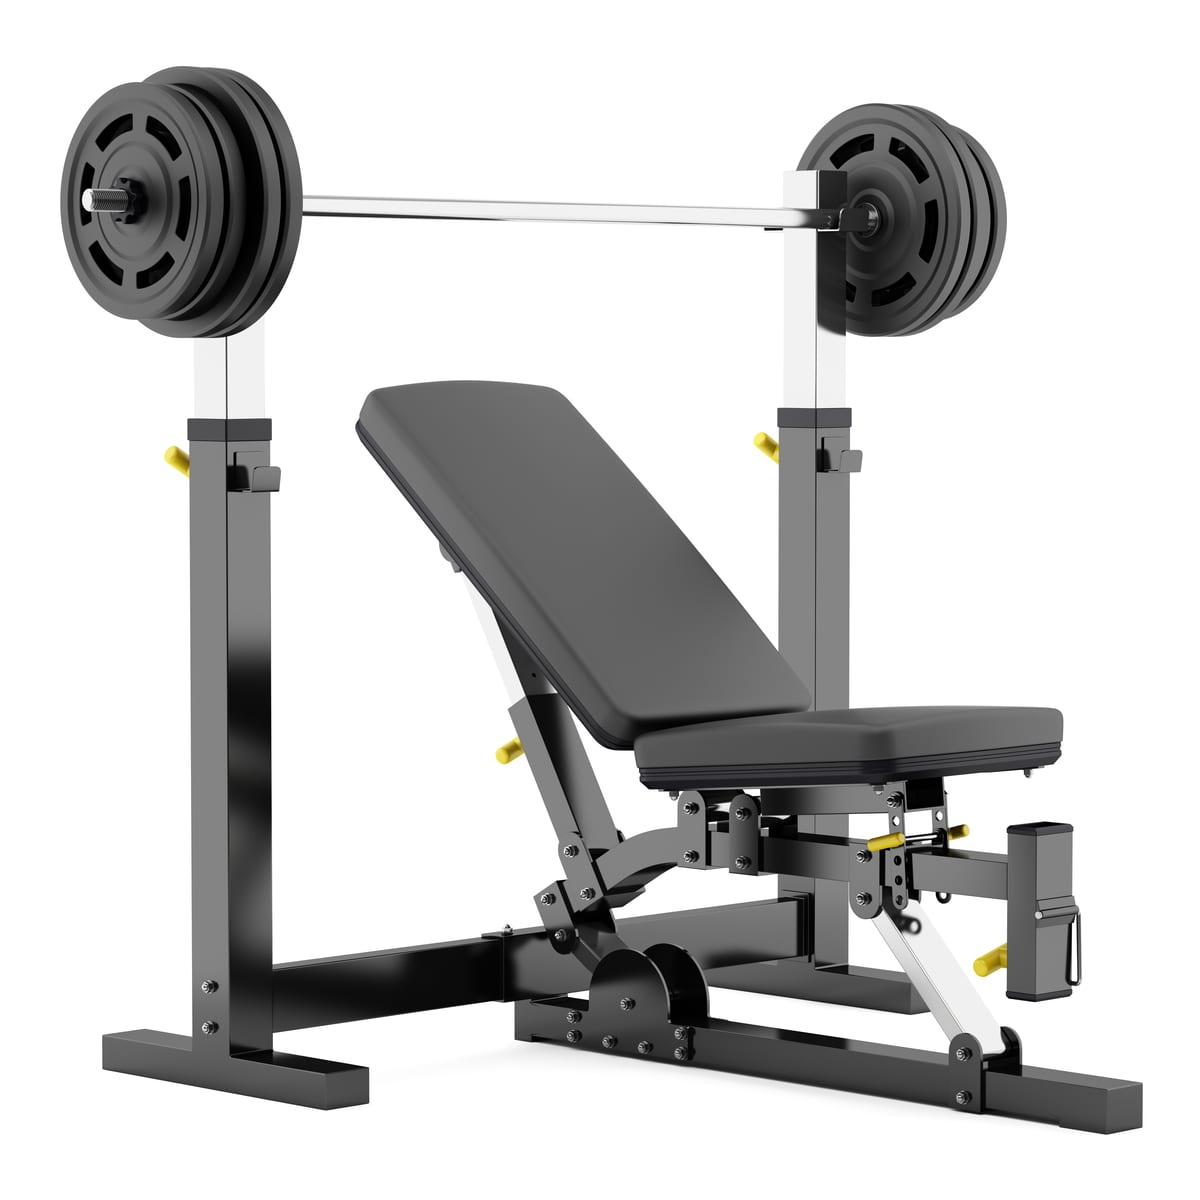 benches dumbbell amazon weights outdoors xmark flat rack dumbell sports bench xm weight fitness with dp com